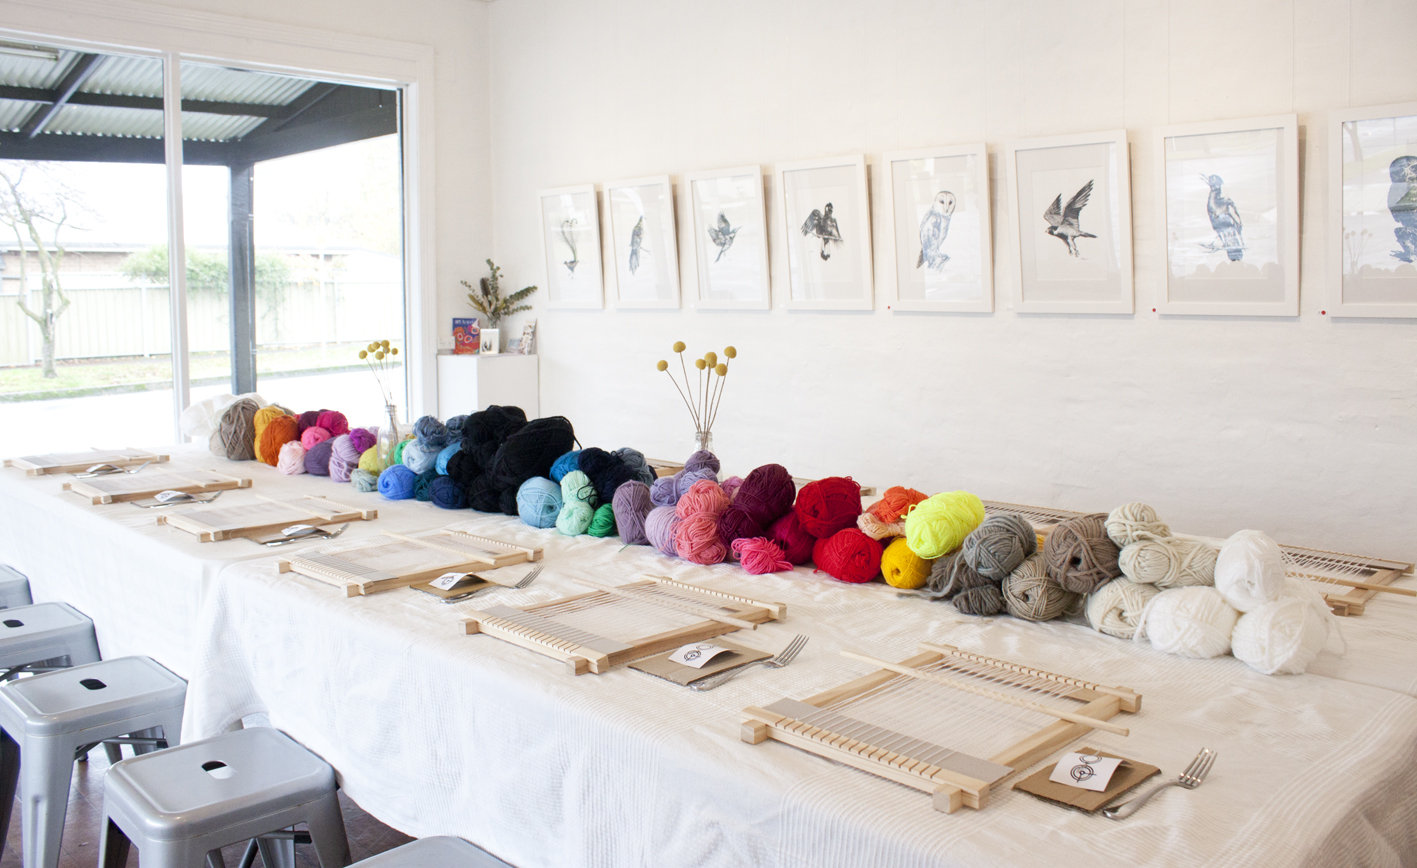 Loom Weaving Workshop - The Corner Store Gallery, Orange NSW, photograph by Madeline Young